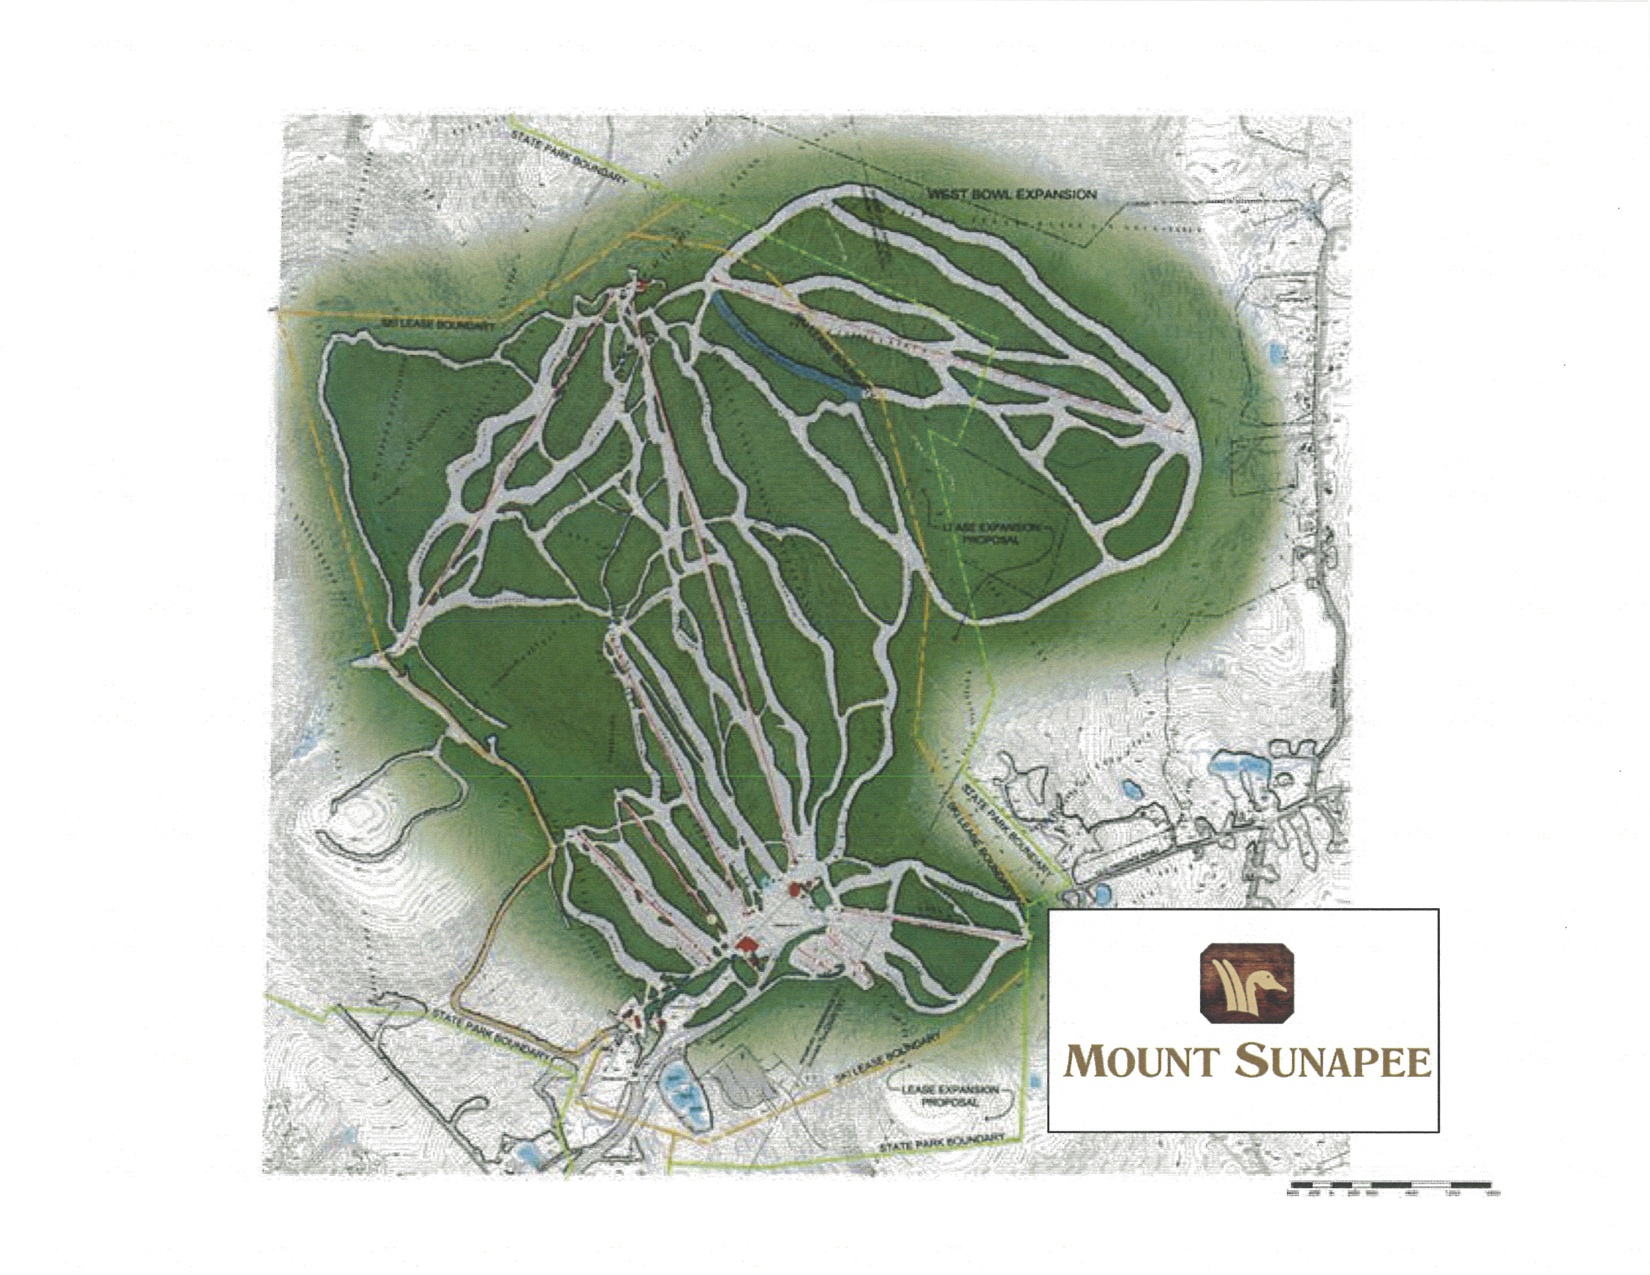 Mount Sunapee expansion